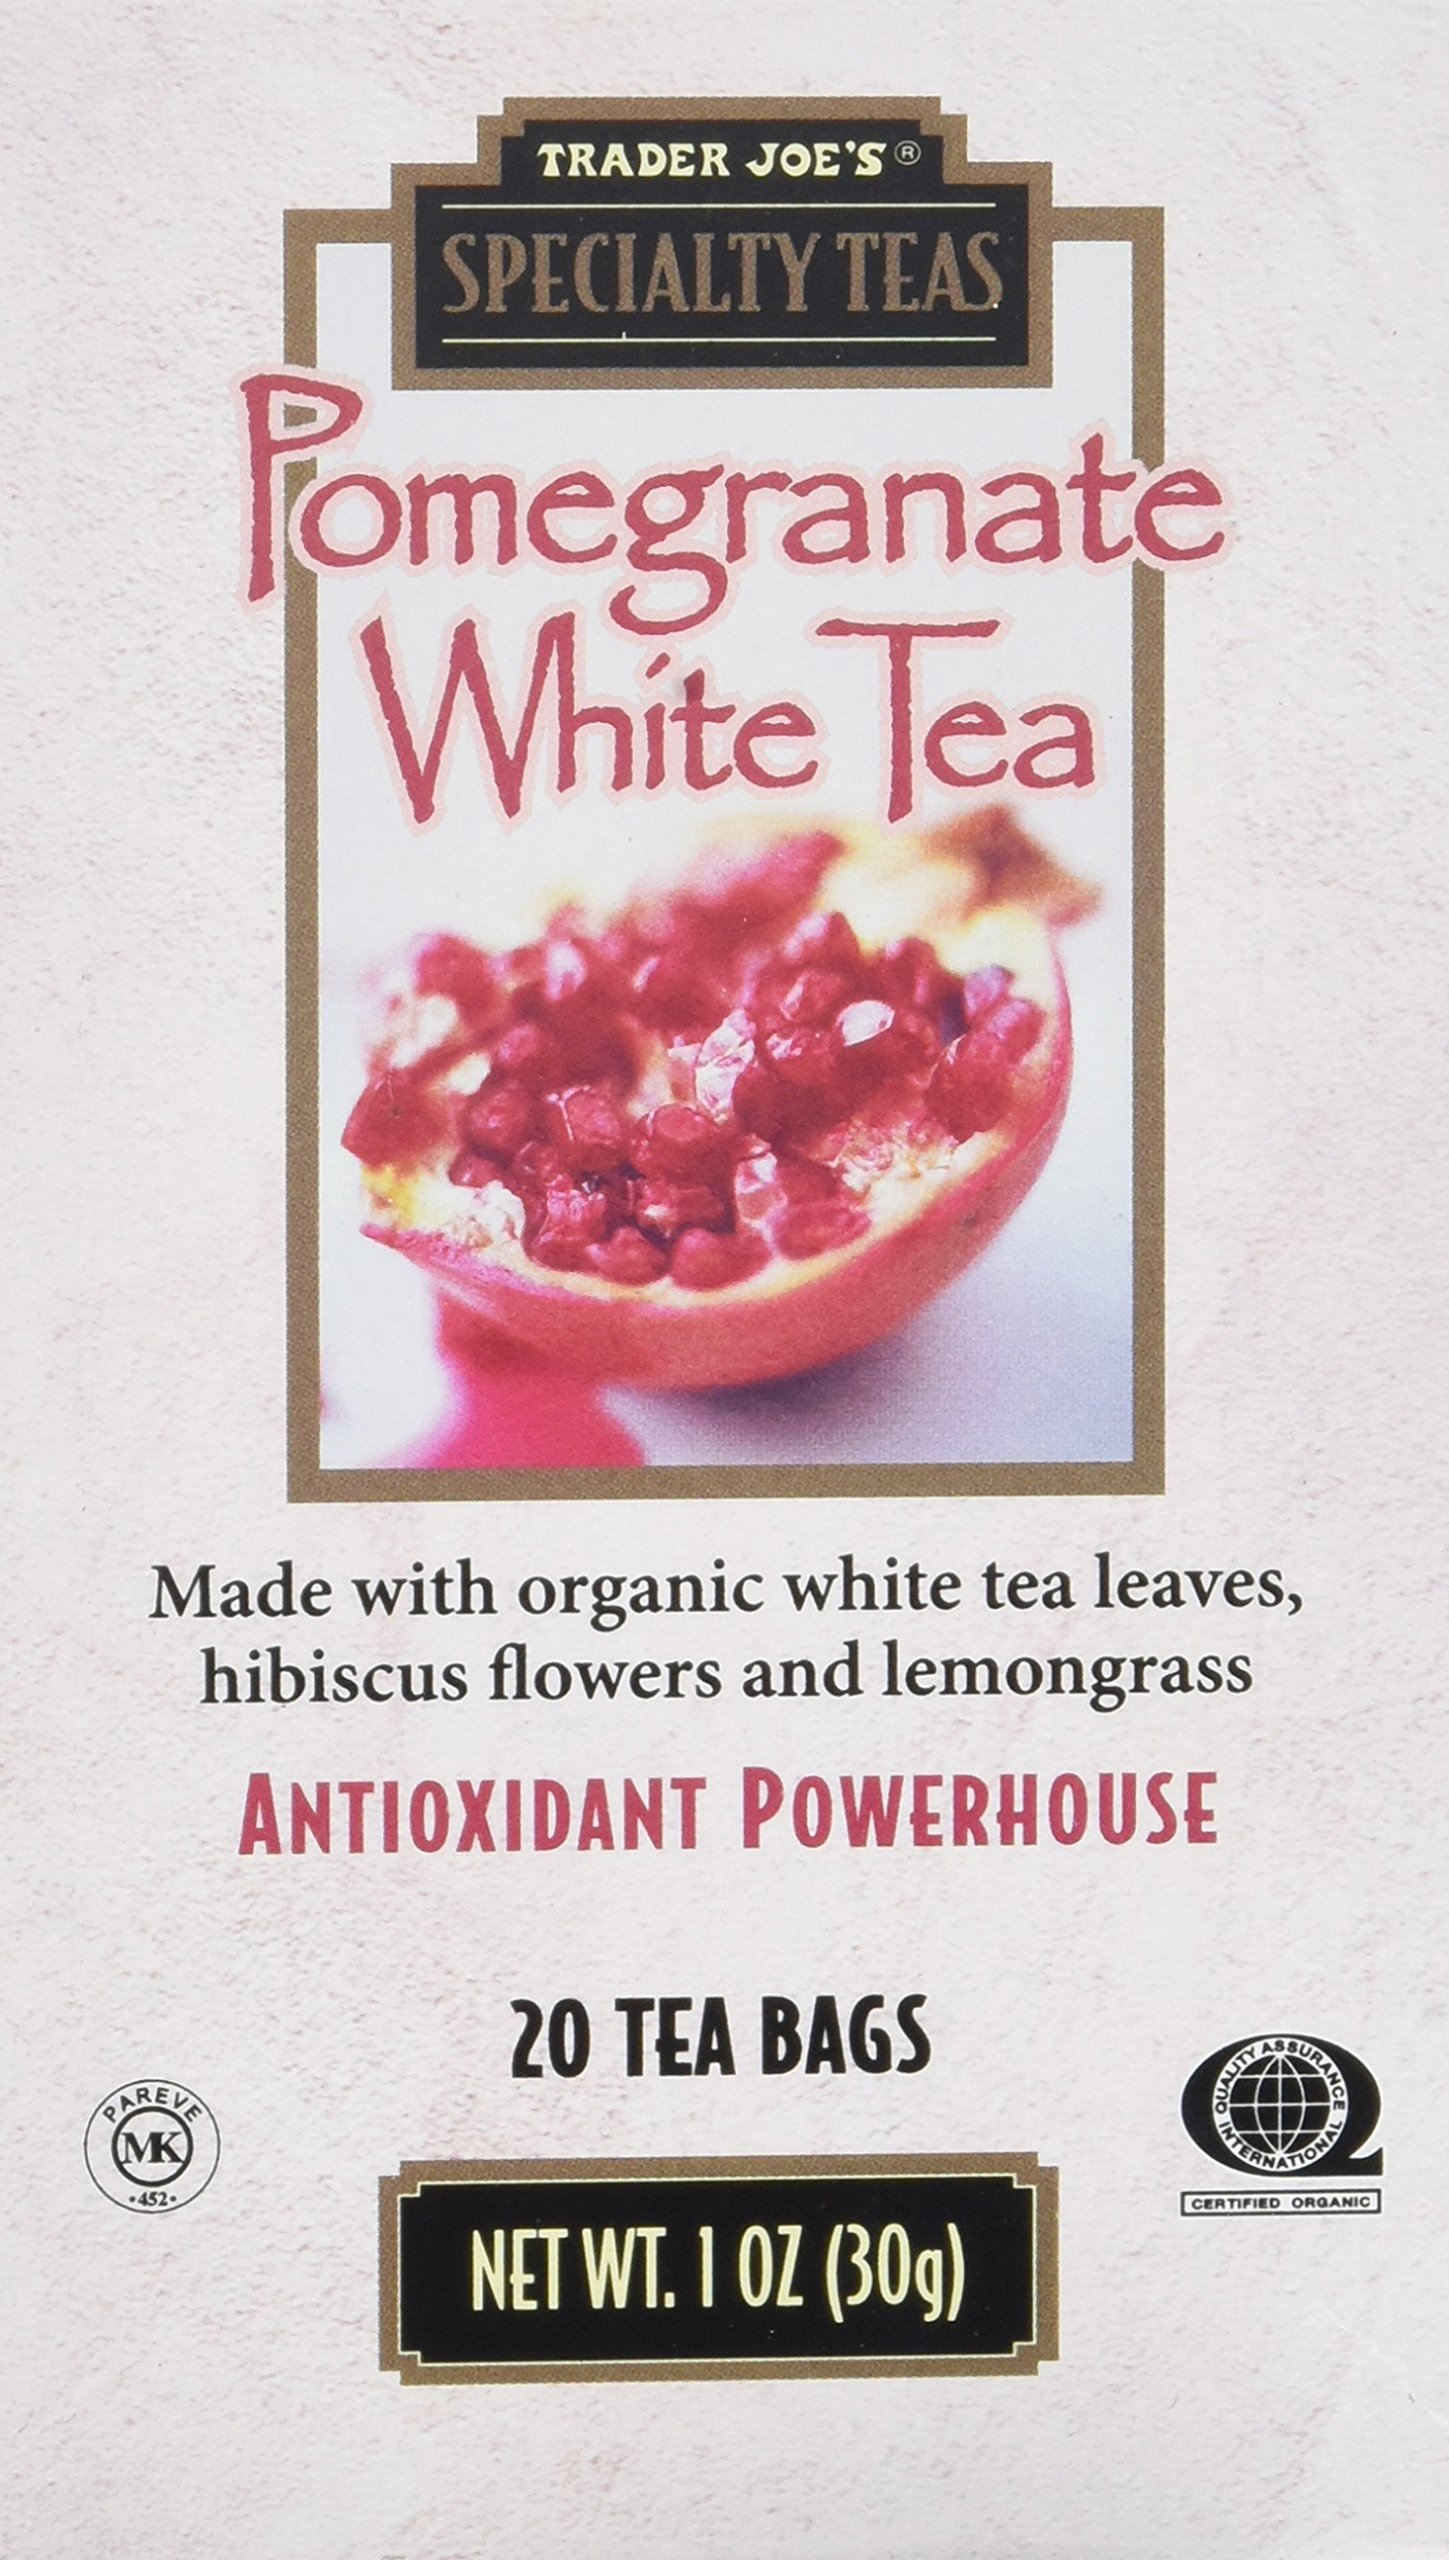 Pomegranate White Tea (2 Pack) by Trader Joe's (Image #1)